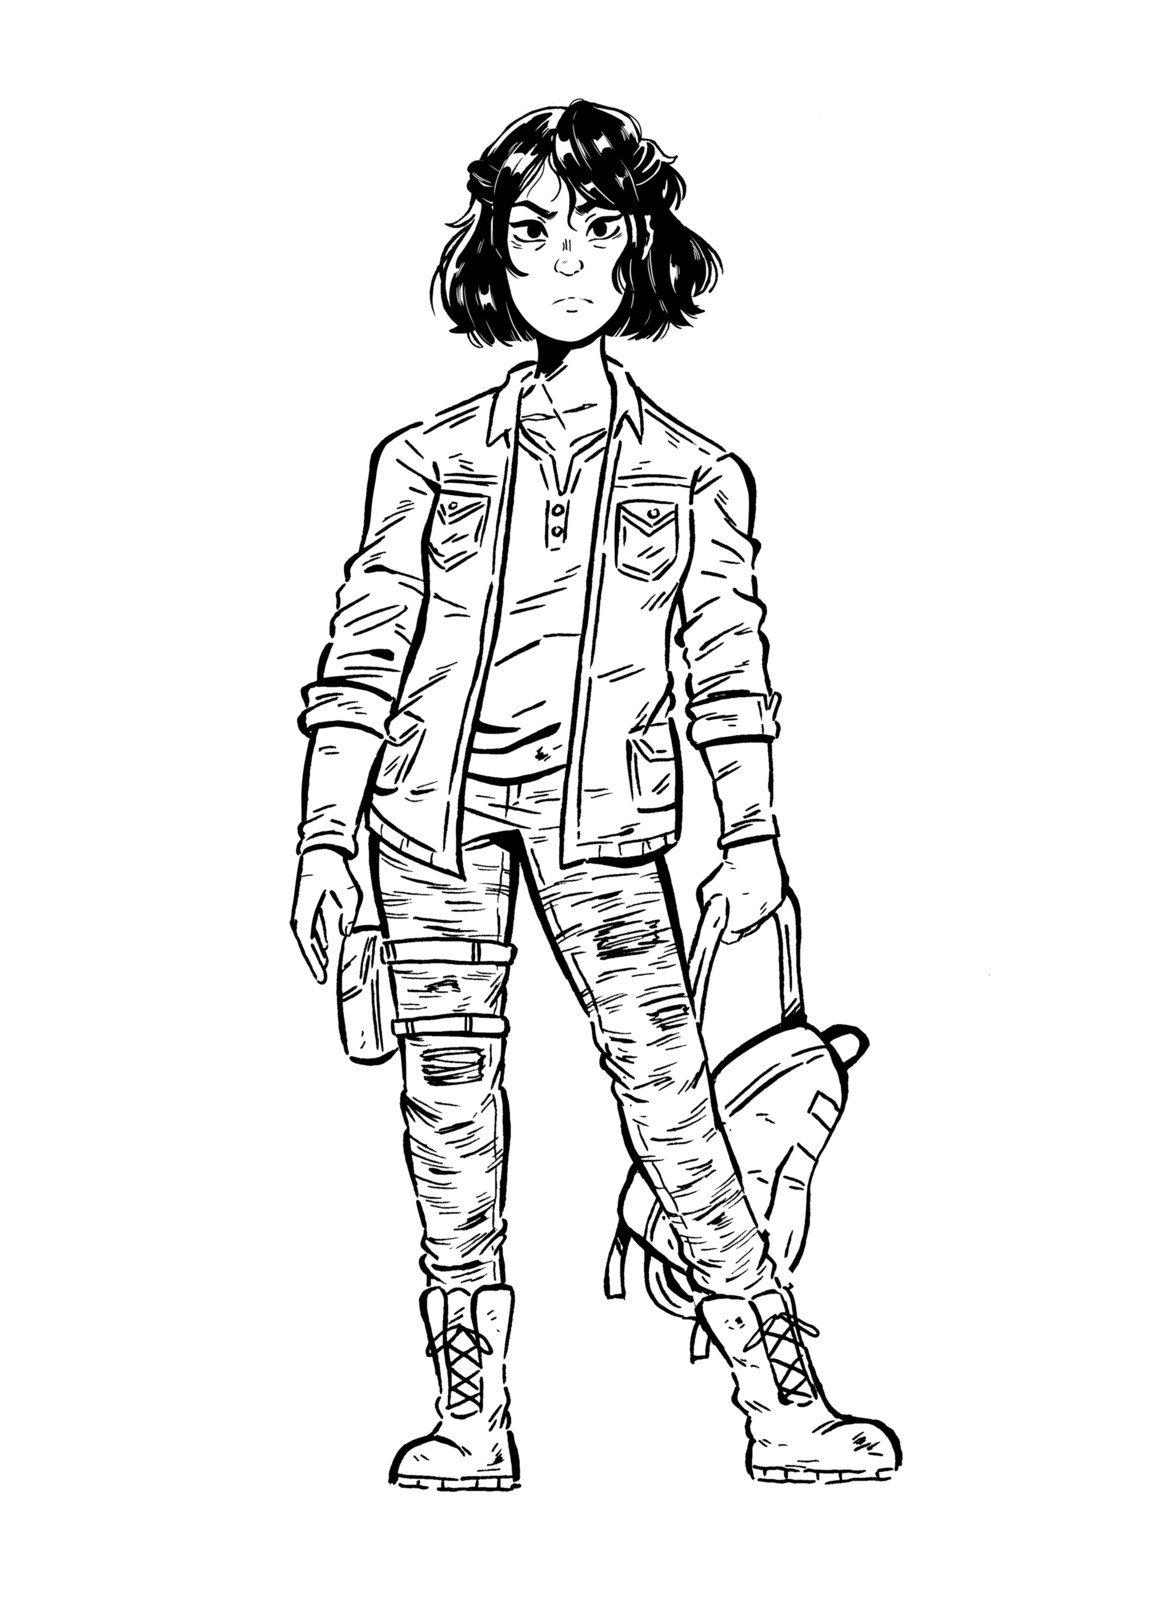 Miles Character Sketch